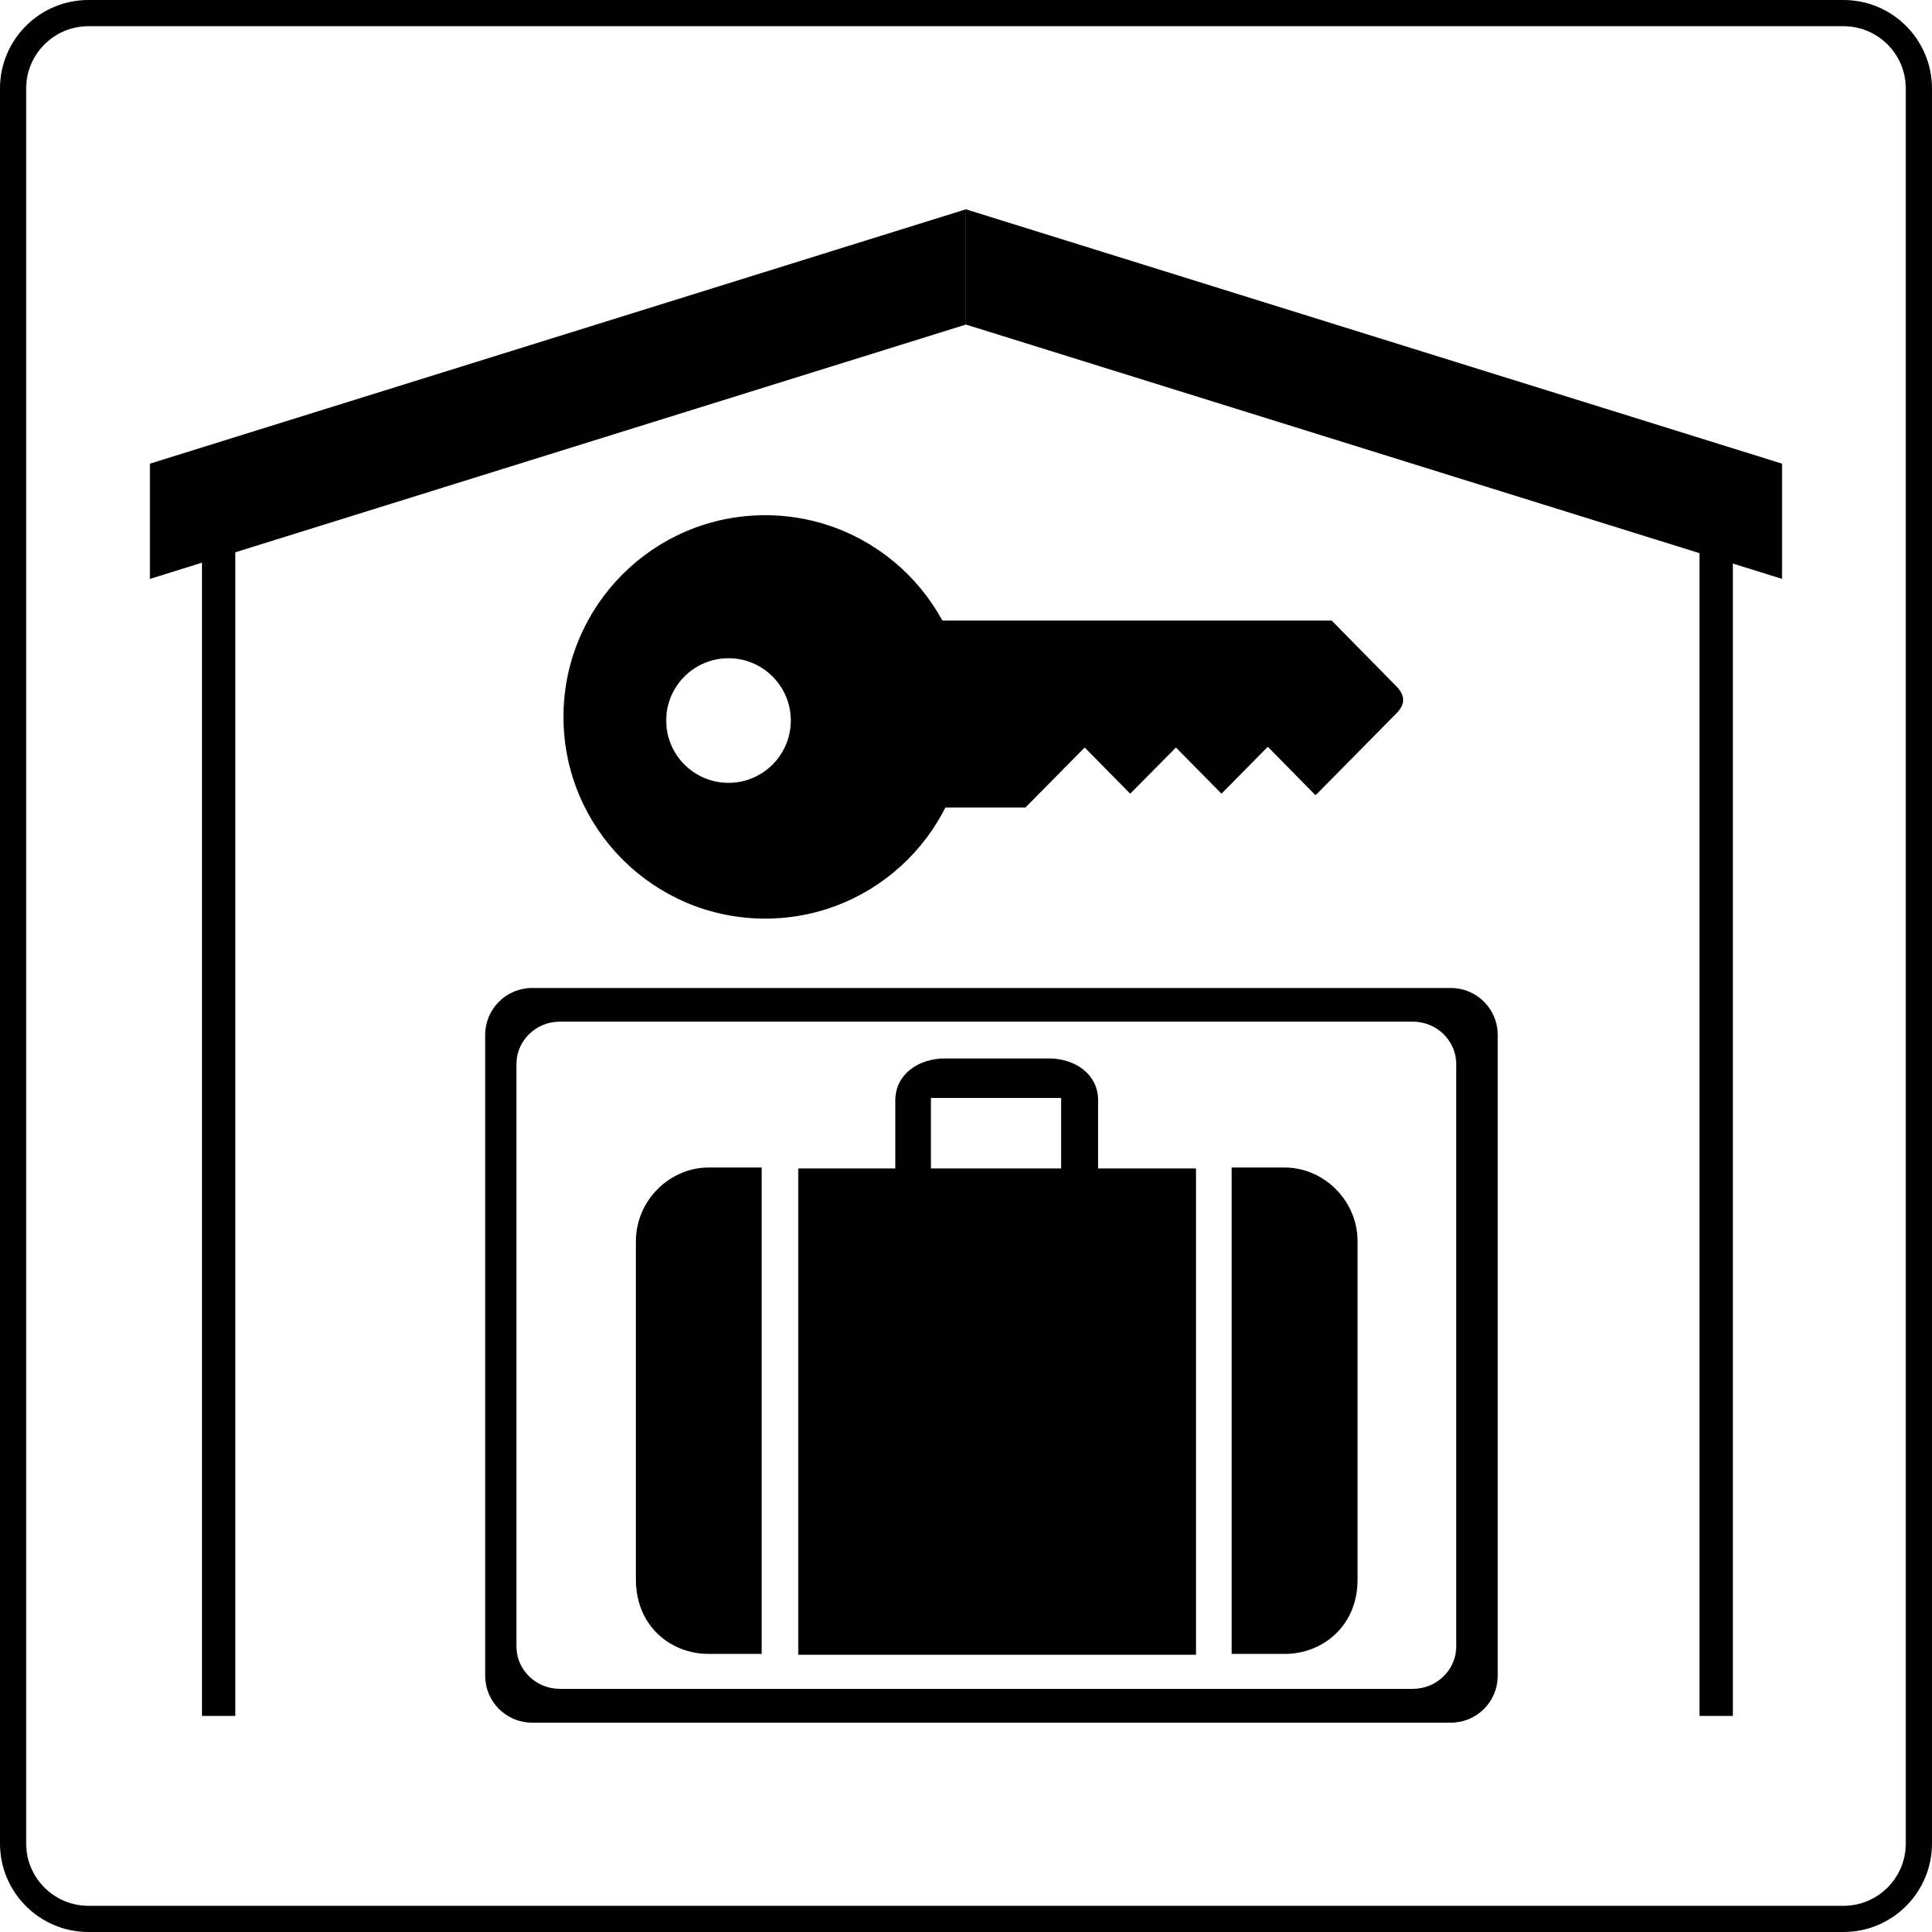 Hotel Icon Foyer : Clipart hotel icon has secure storage in room